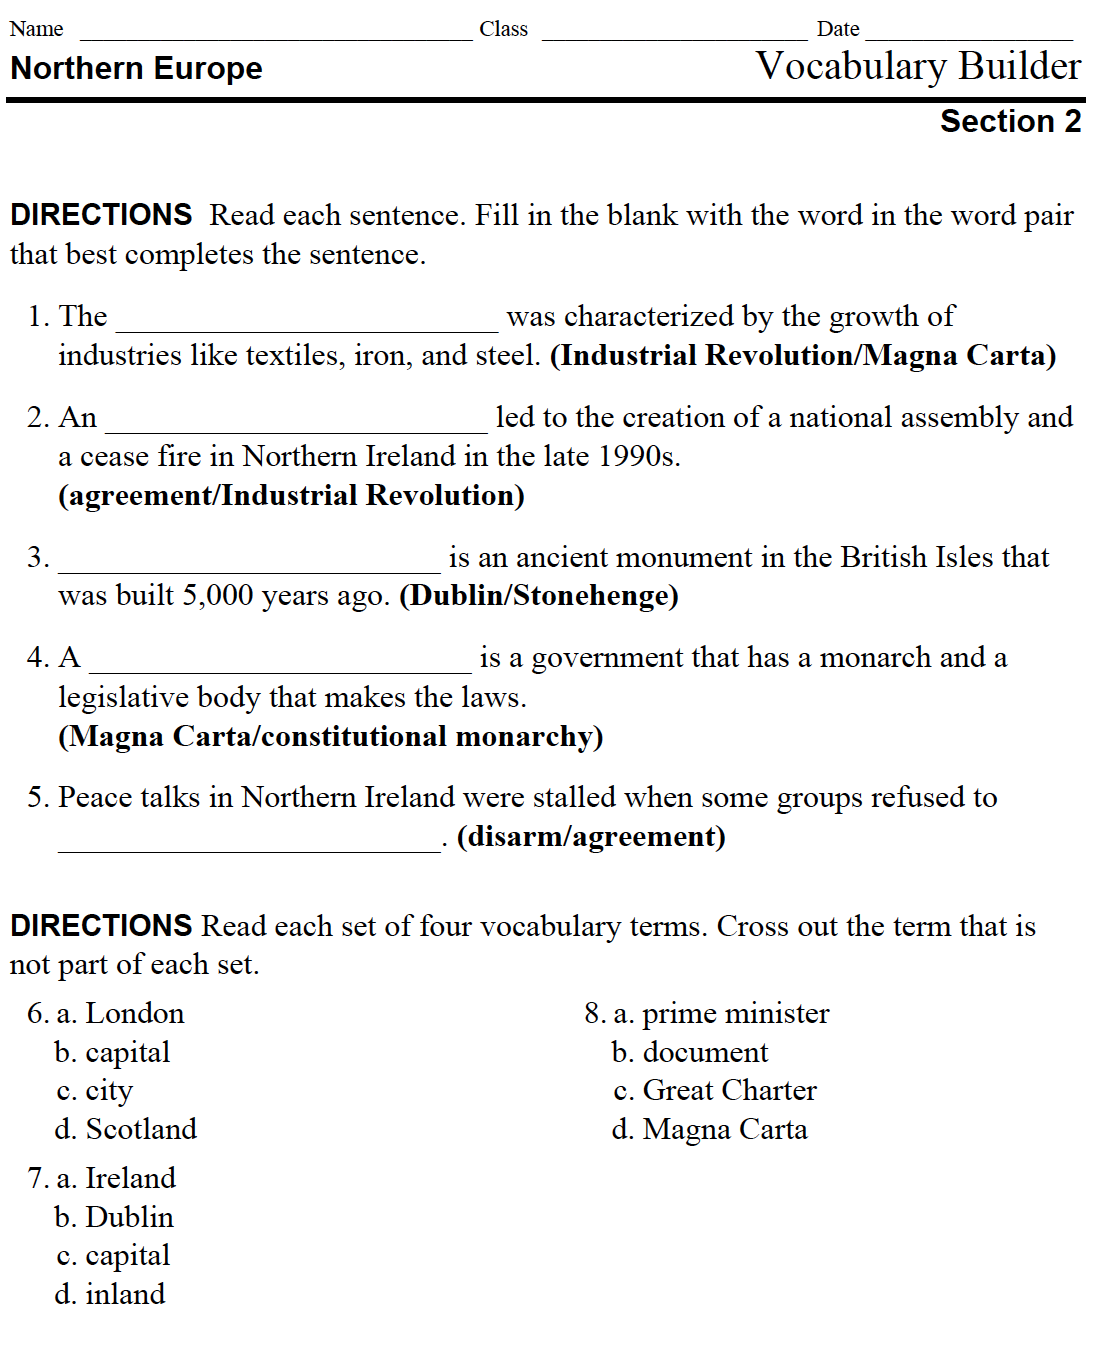 Guided reading activity 14 2 the basis of citizenship answers